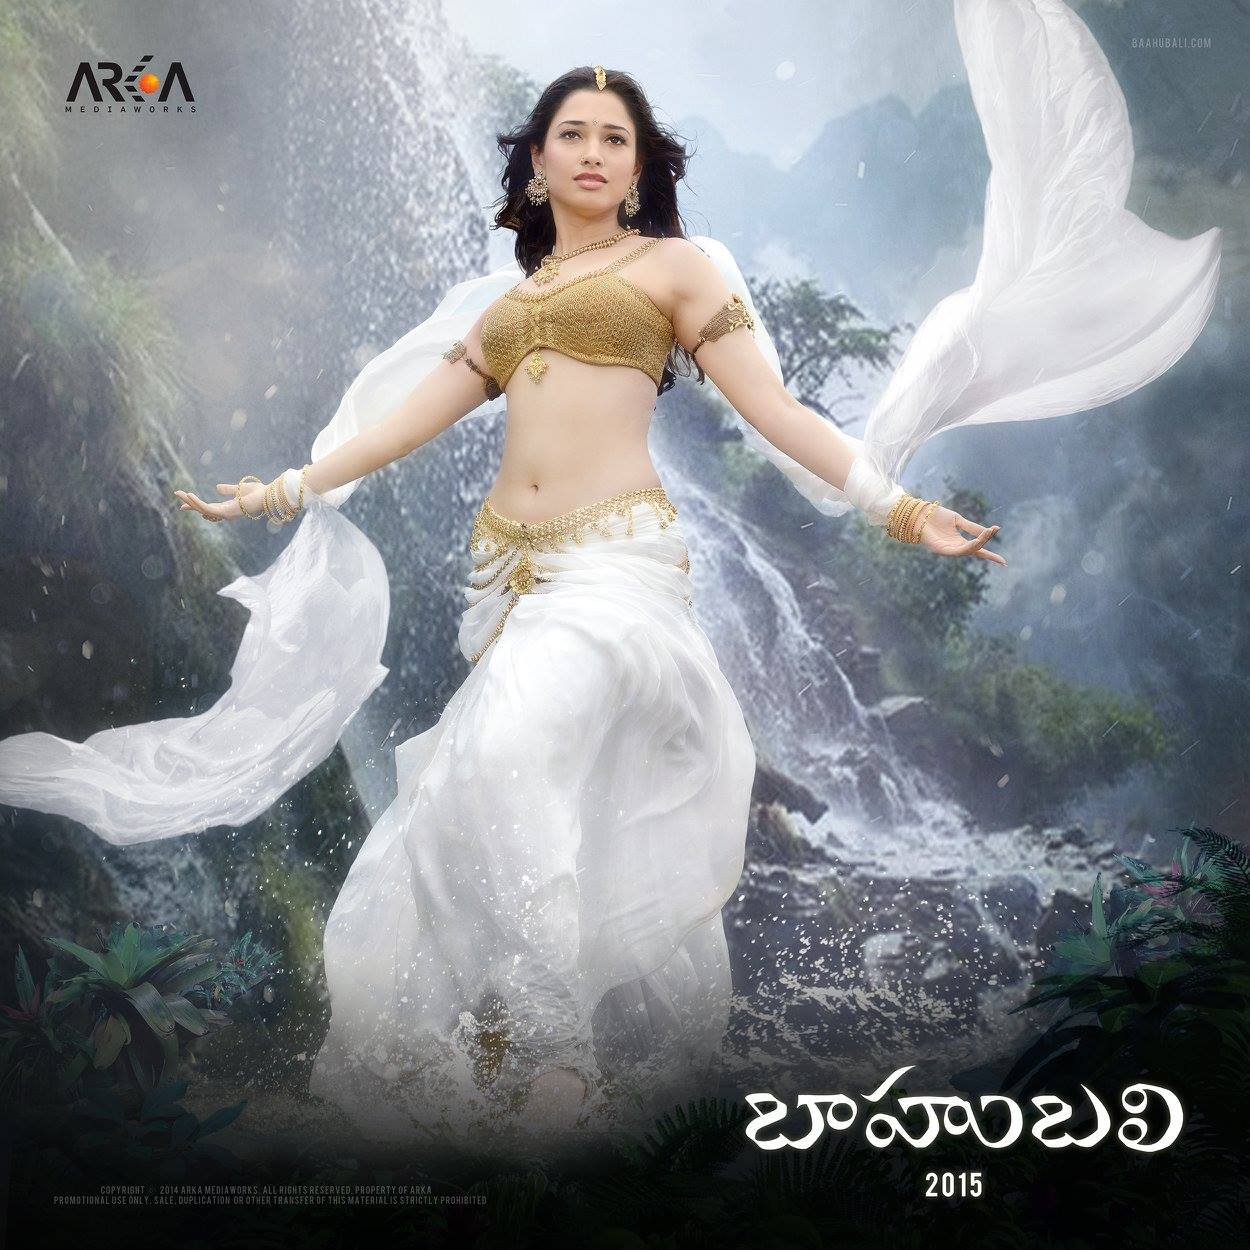 Baahubali Movie Wallpapers | TollywoodFans.in